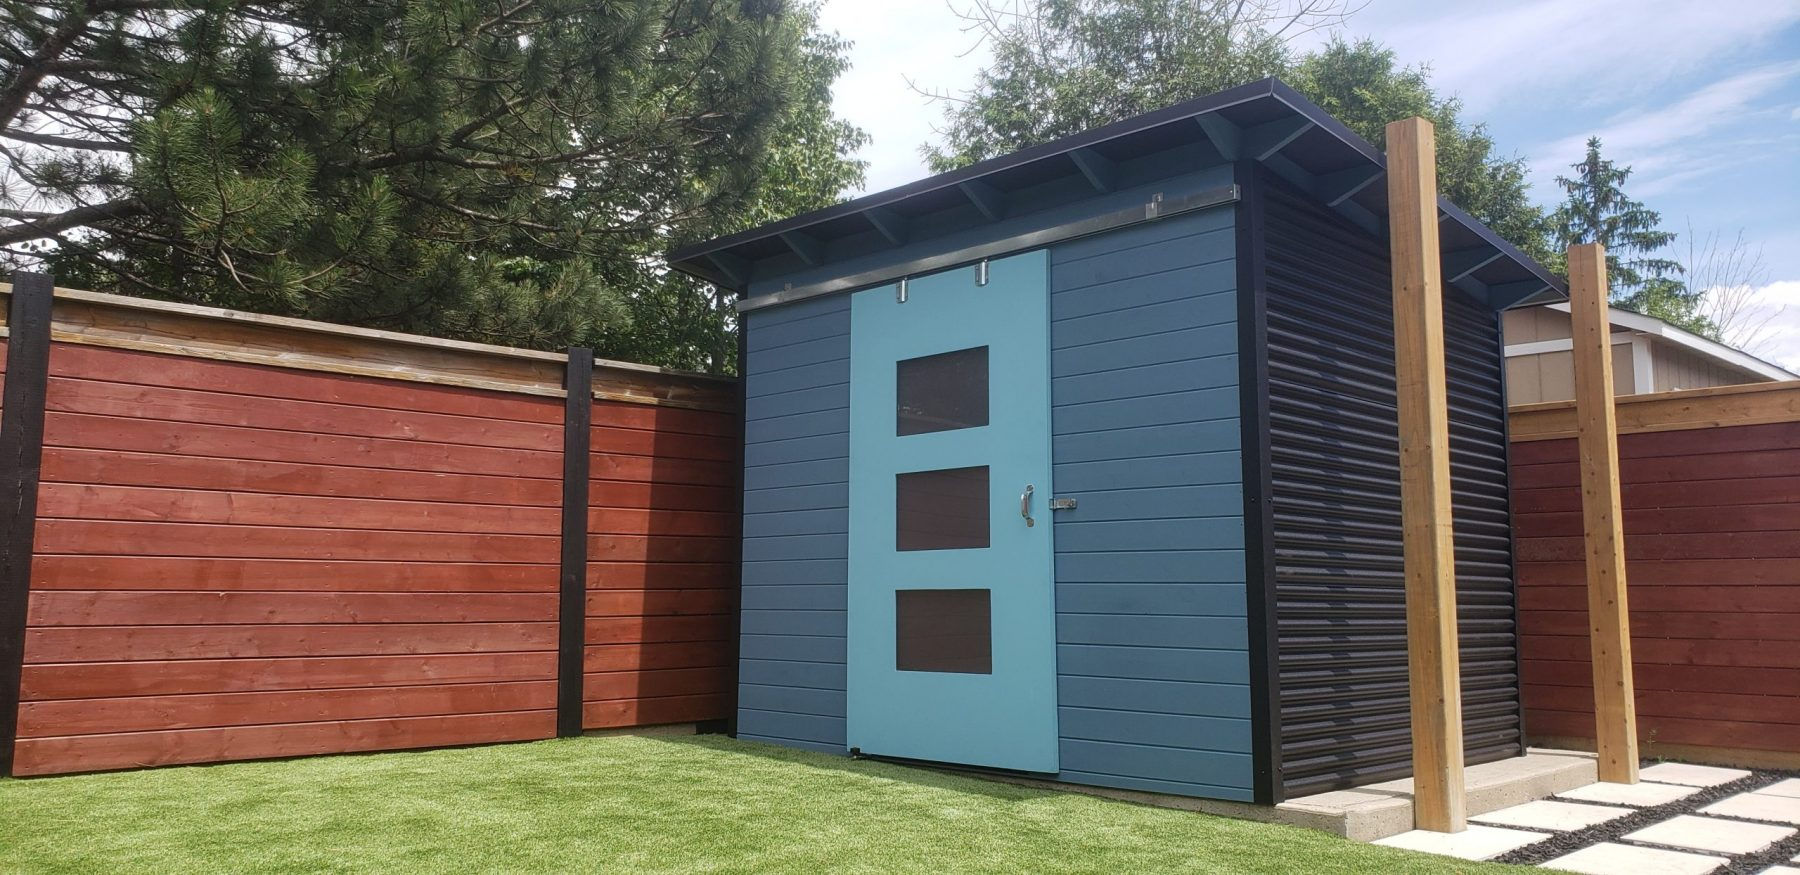 10' x 8' Essential Shed with Blueprint Blue Stain and Bright Turquoise Door